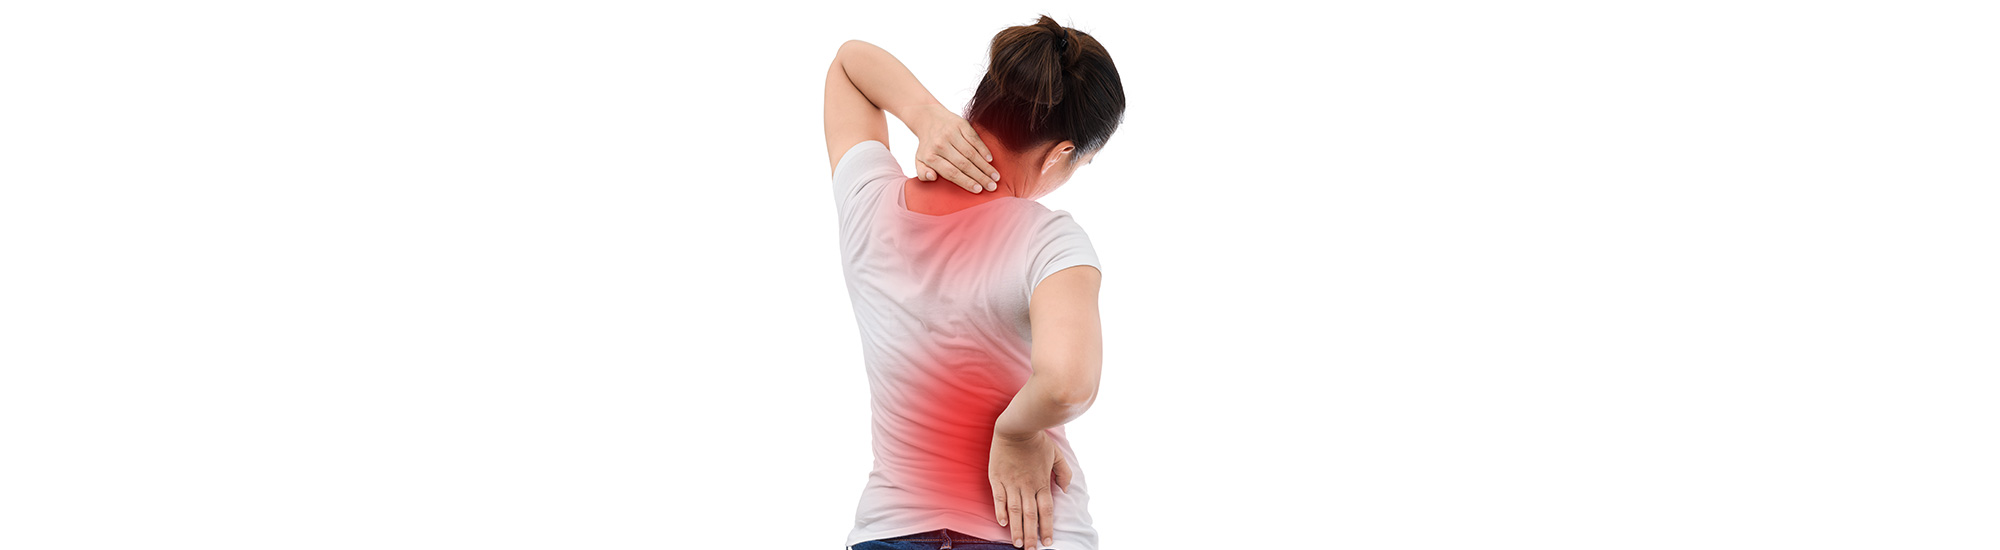 Ayurvedic treatment for Osteoporosis  Causes